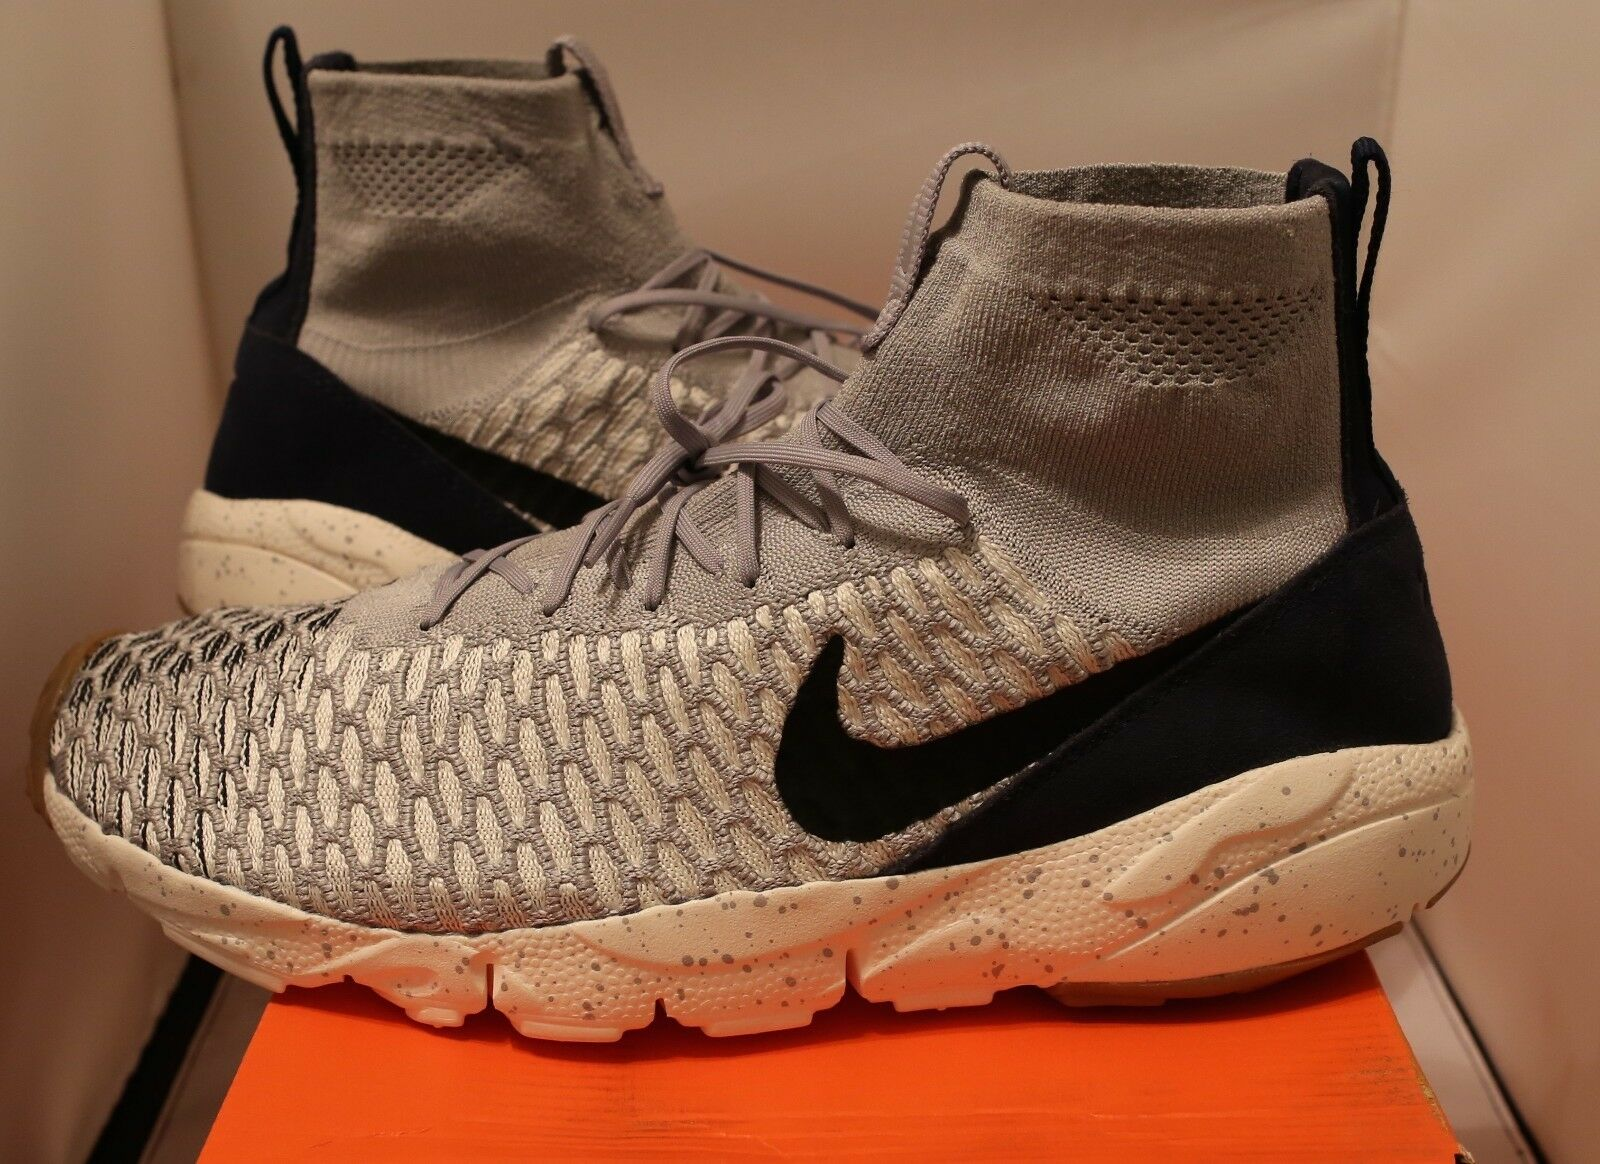 New Nike Air Footscape Magista Flyknit Wolf Grey Obsidian 816560 001 Size 12.5